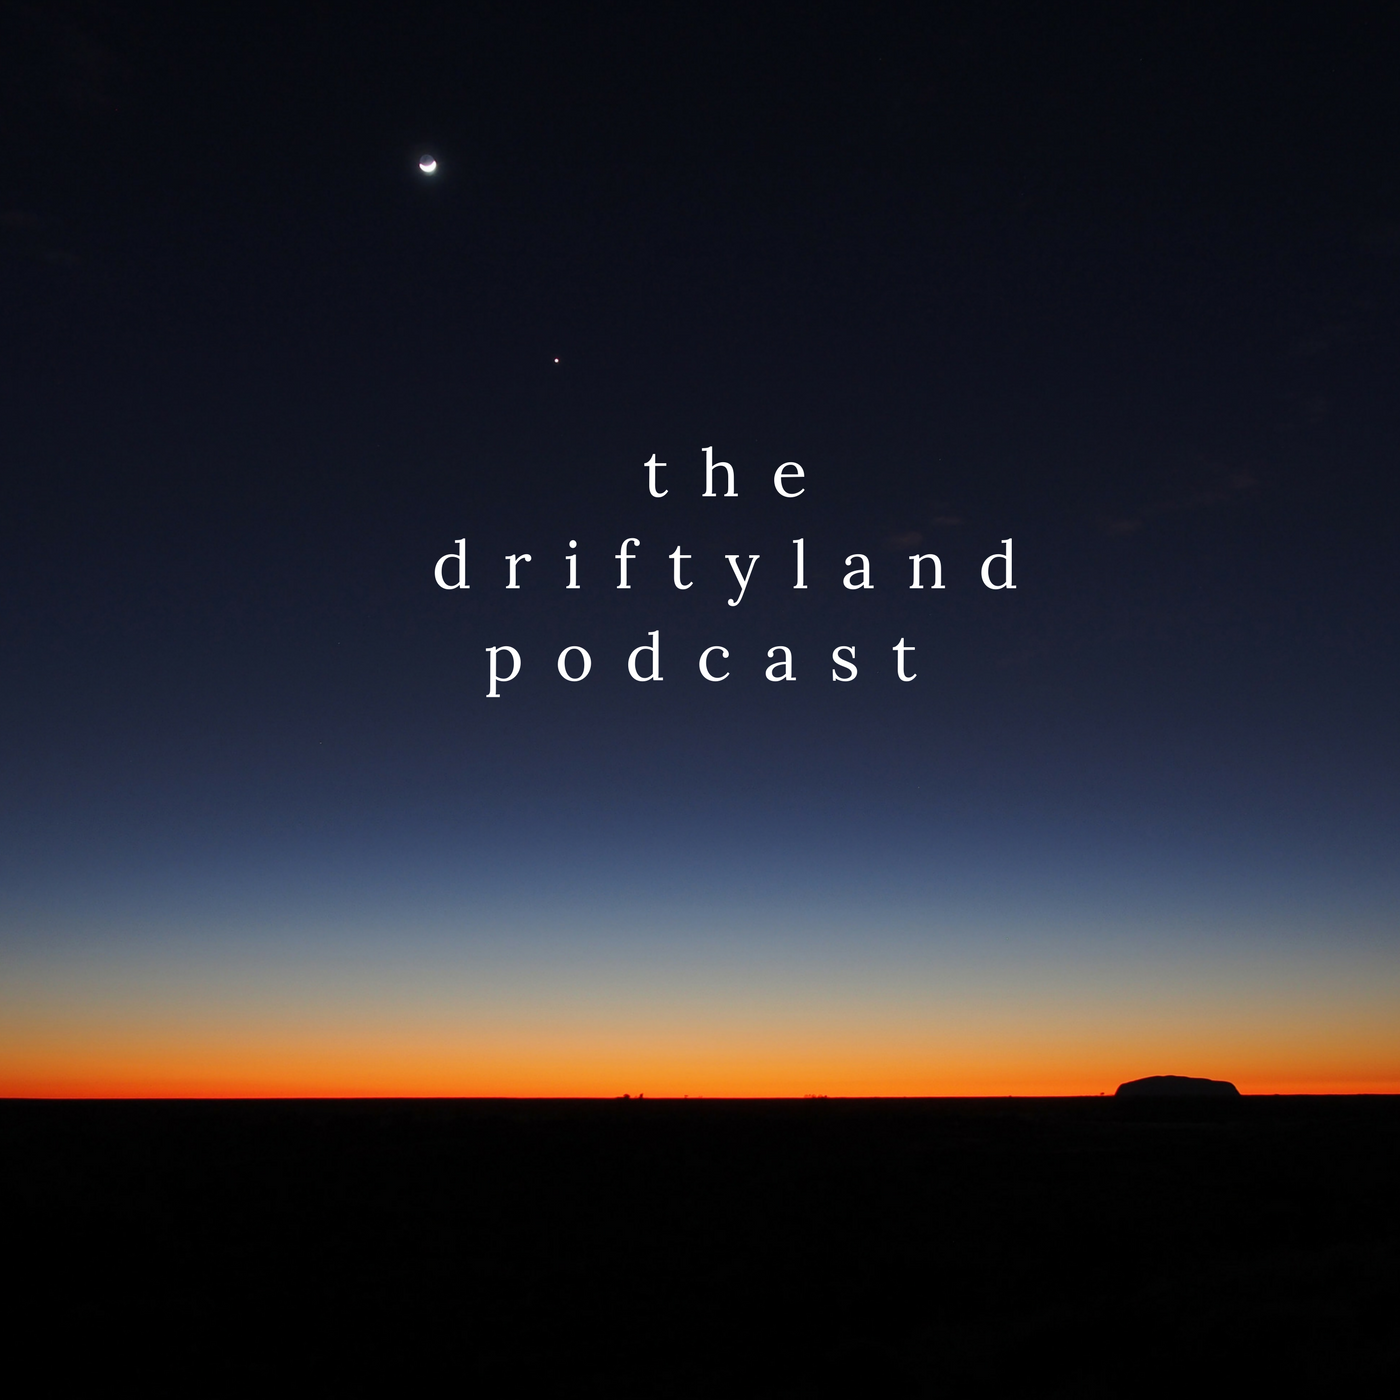 the driftyland podcast (1)